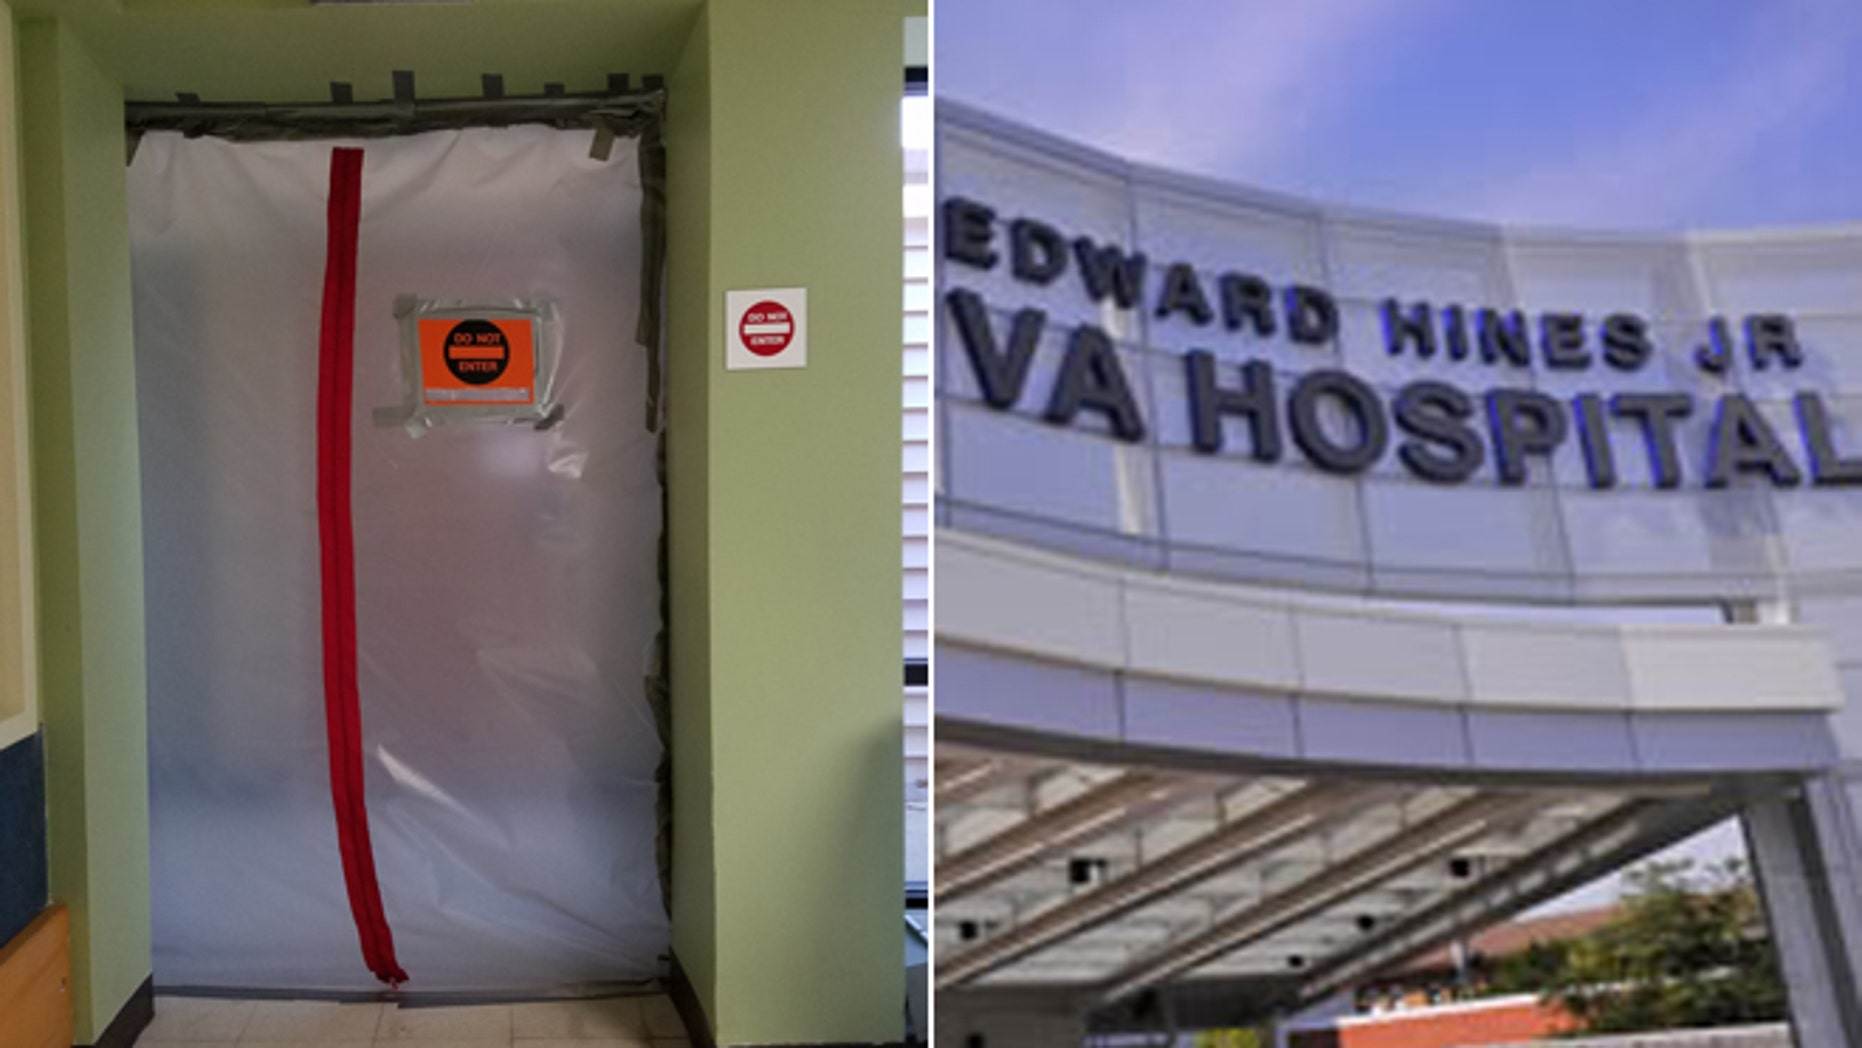 At left, an image of one of the mold-affected rooms at Edward Hines, Jr. VA Hospital.